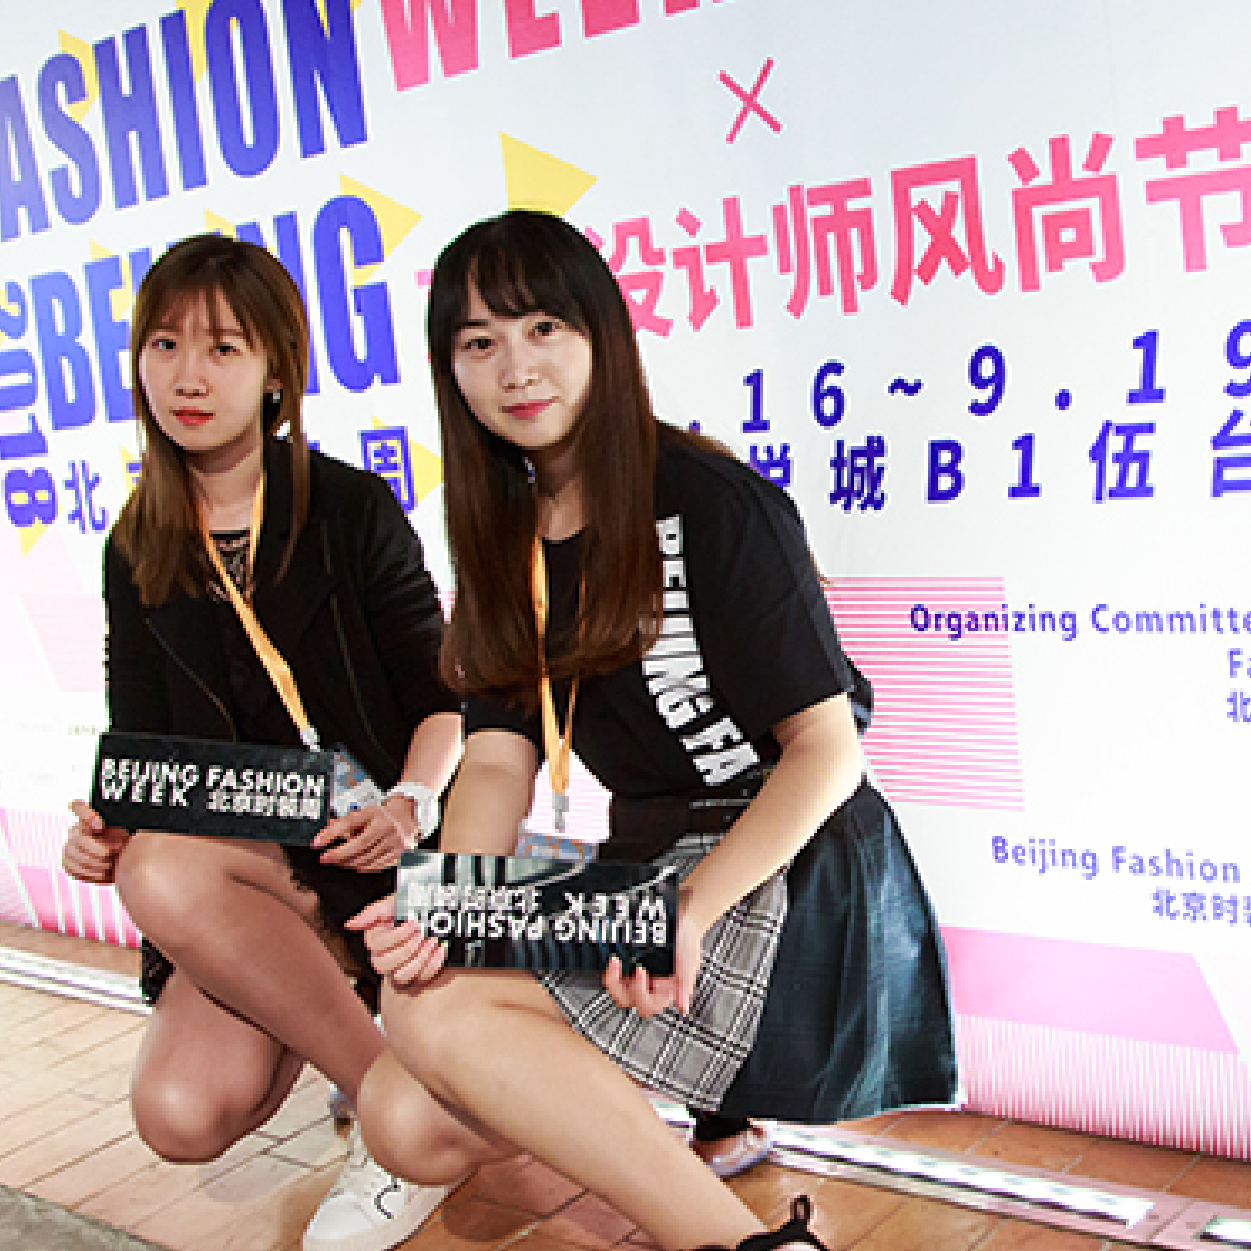 Beijing Fashion Week